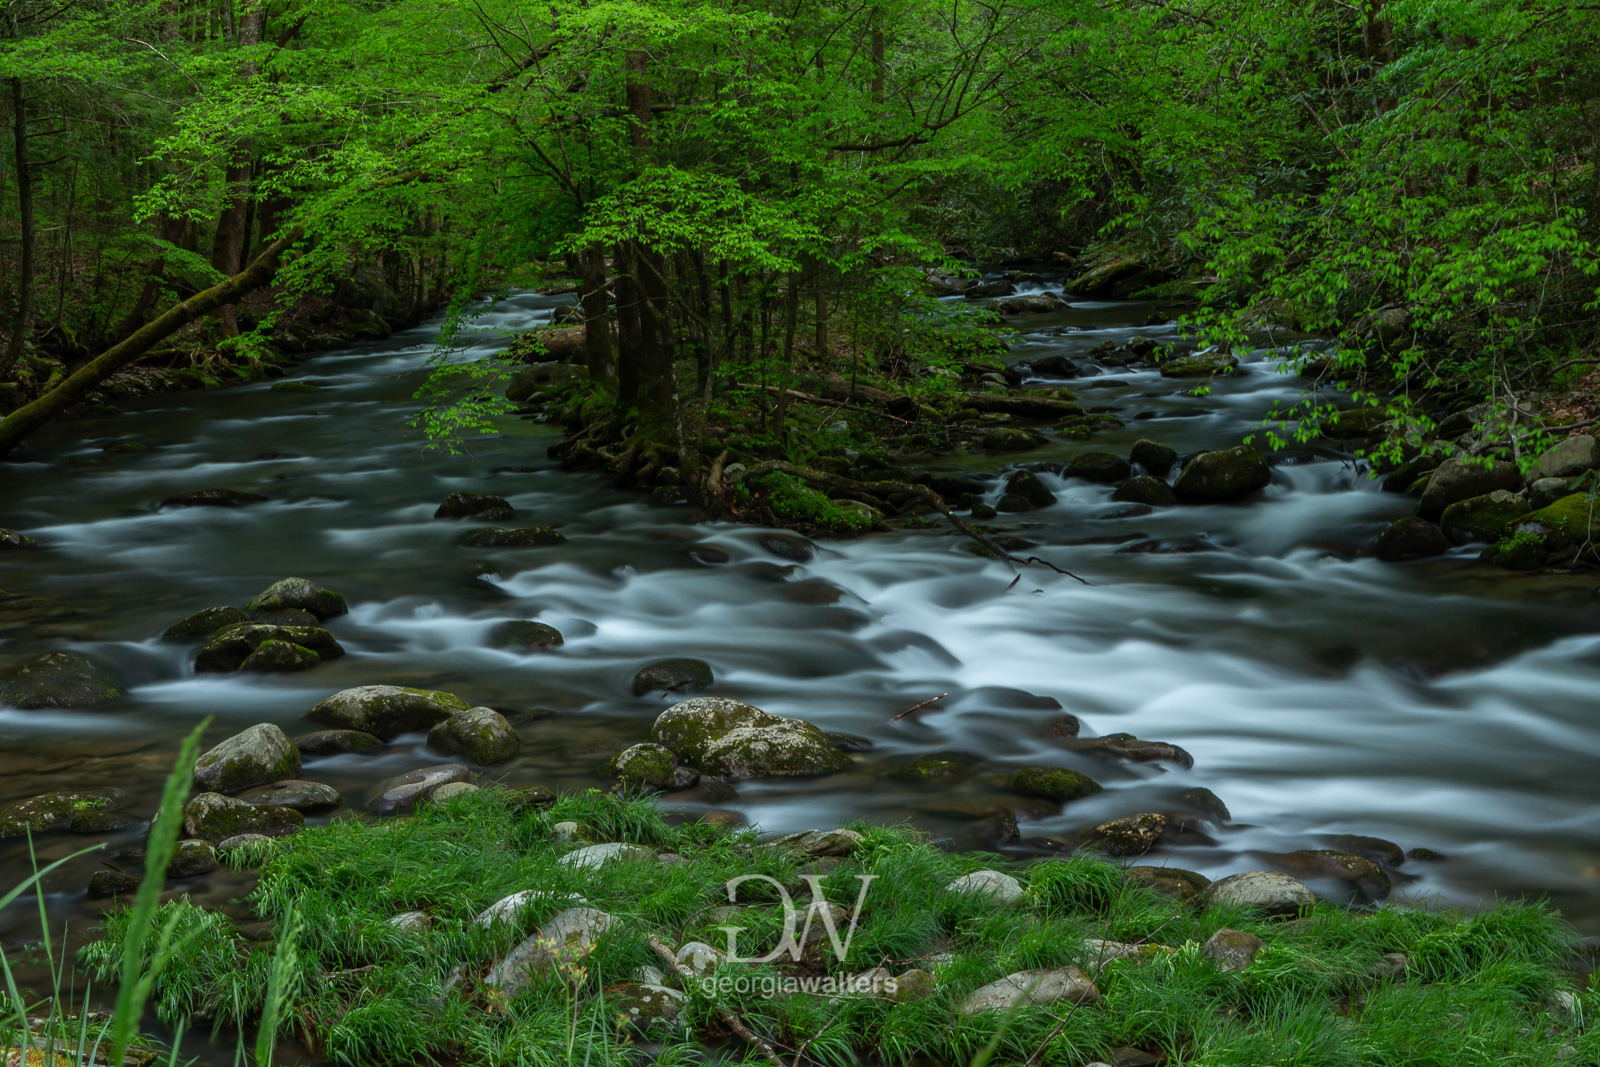 Two swift flowing creeks merge into one.